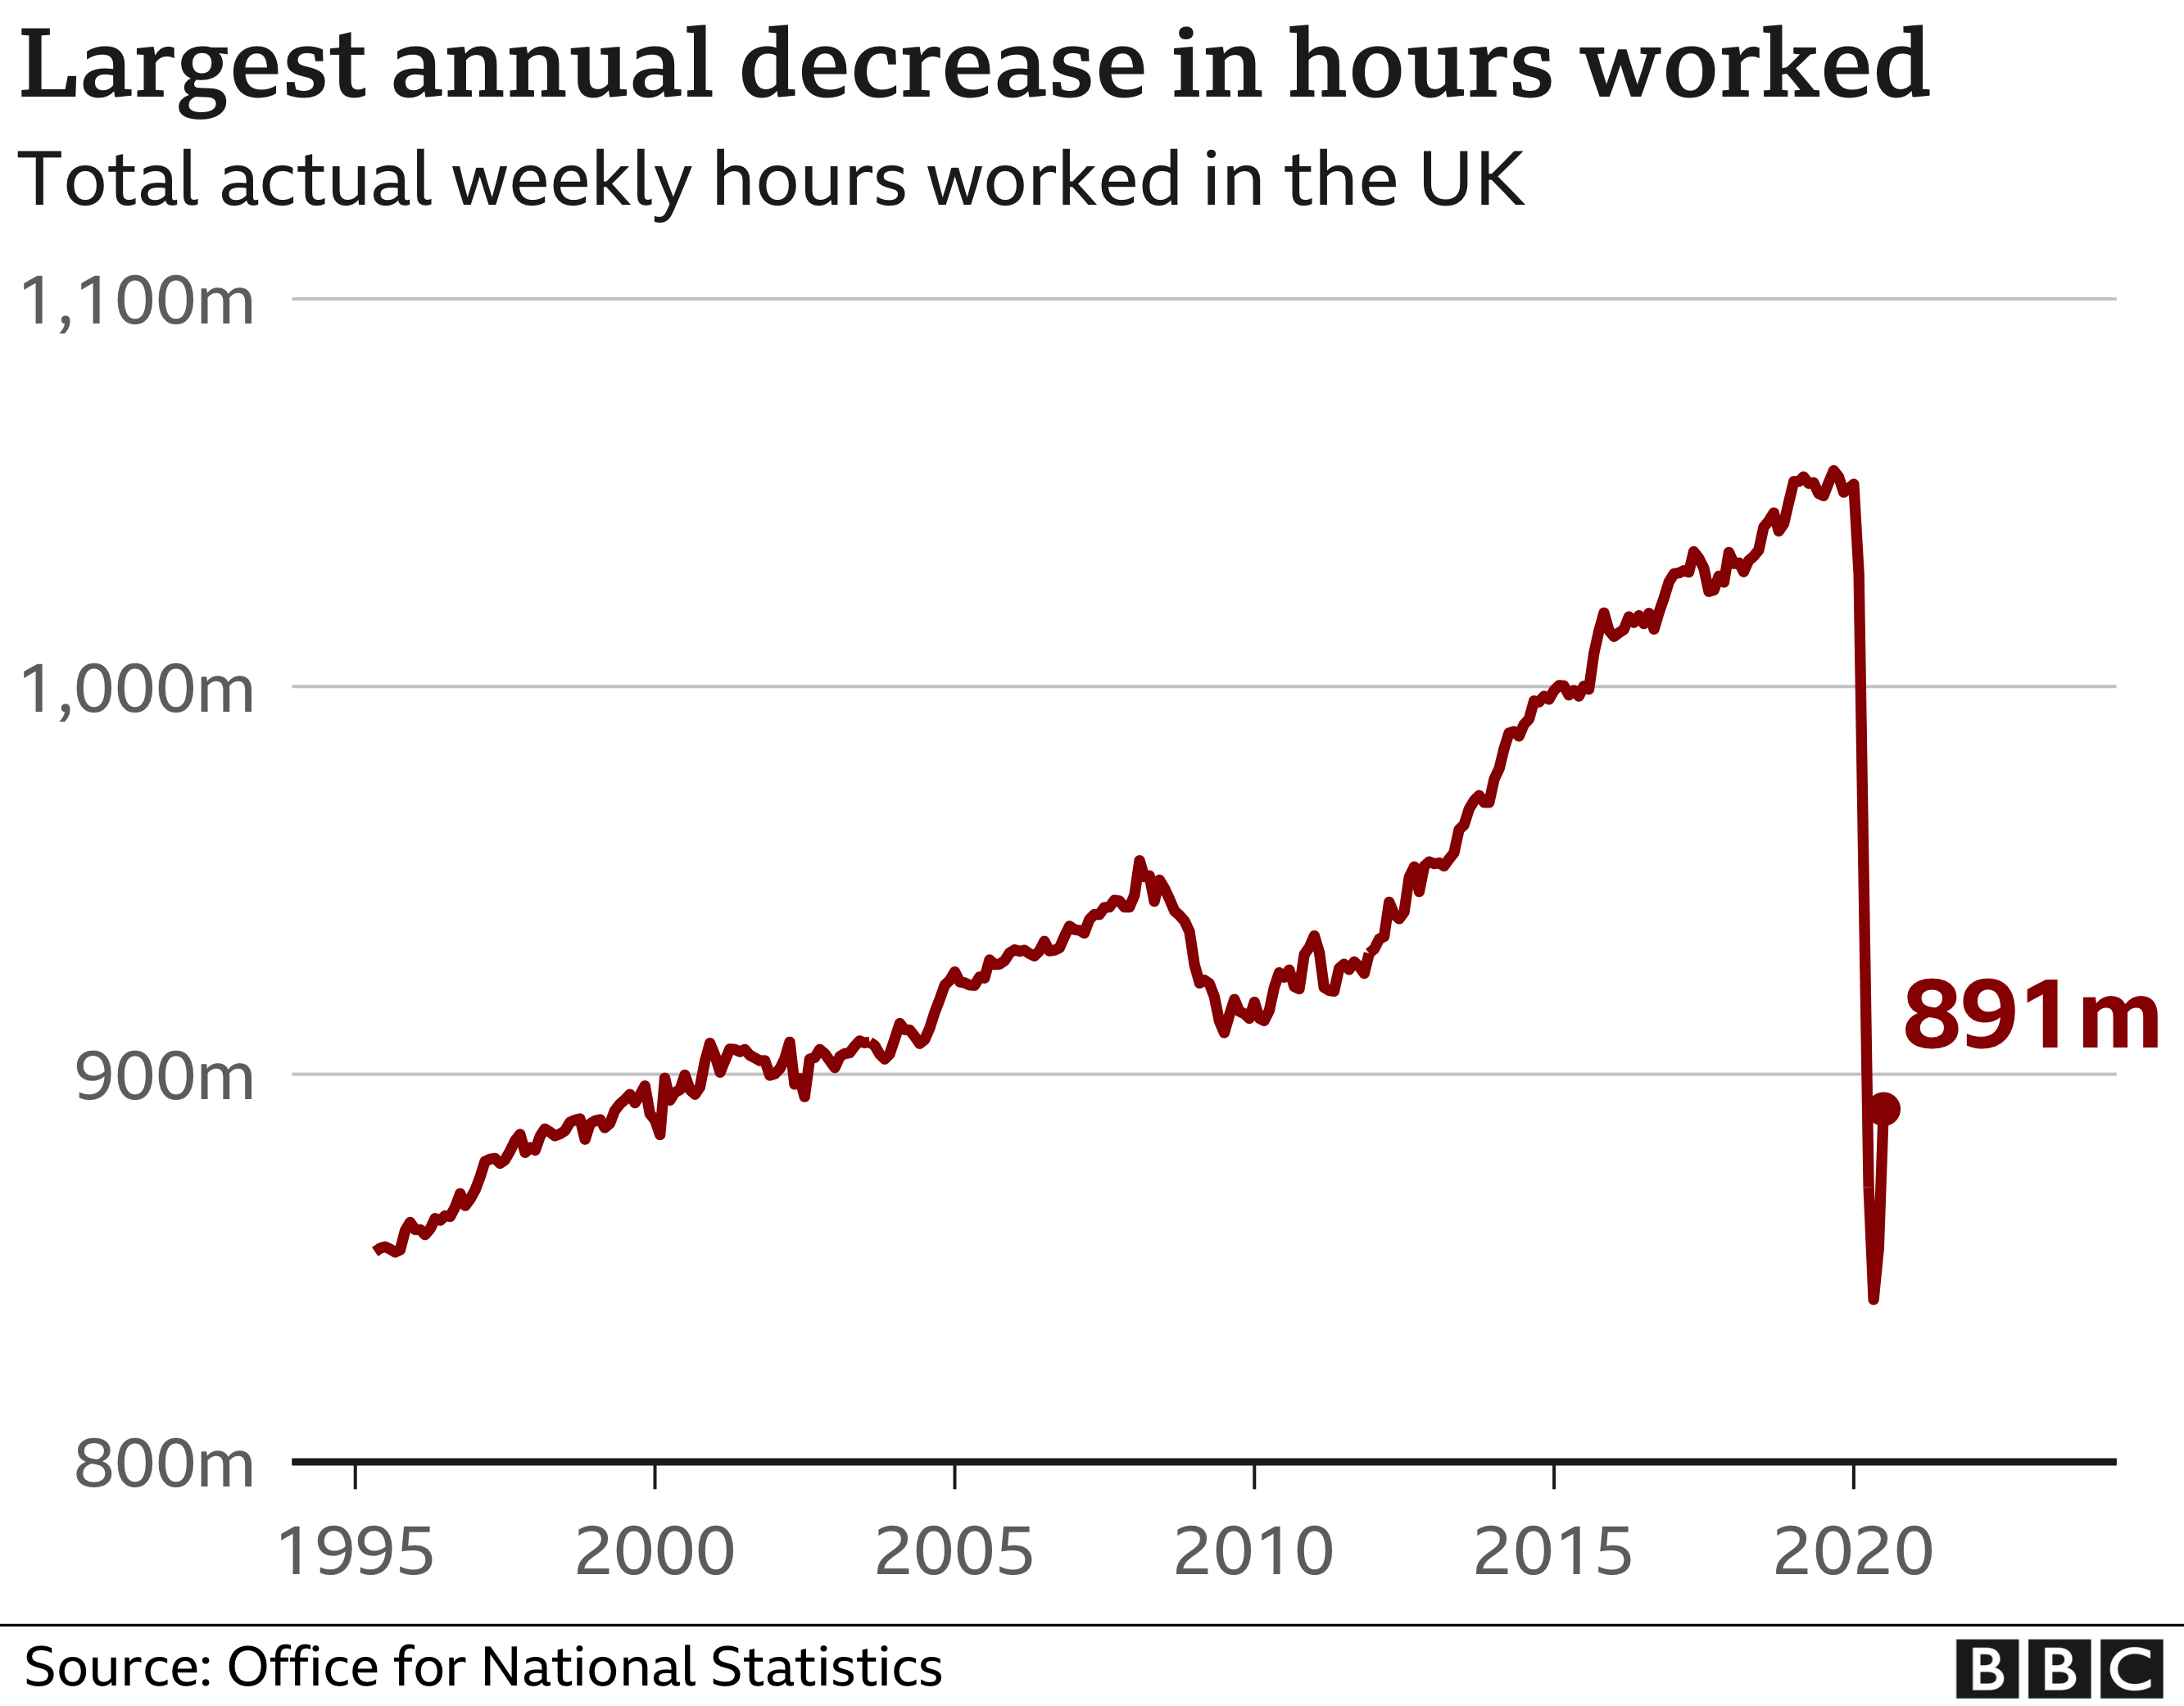 Decrease in hours worked